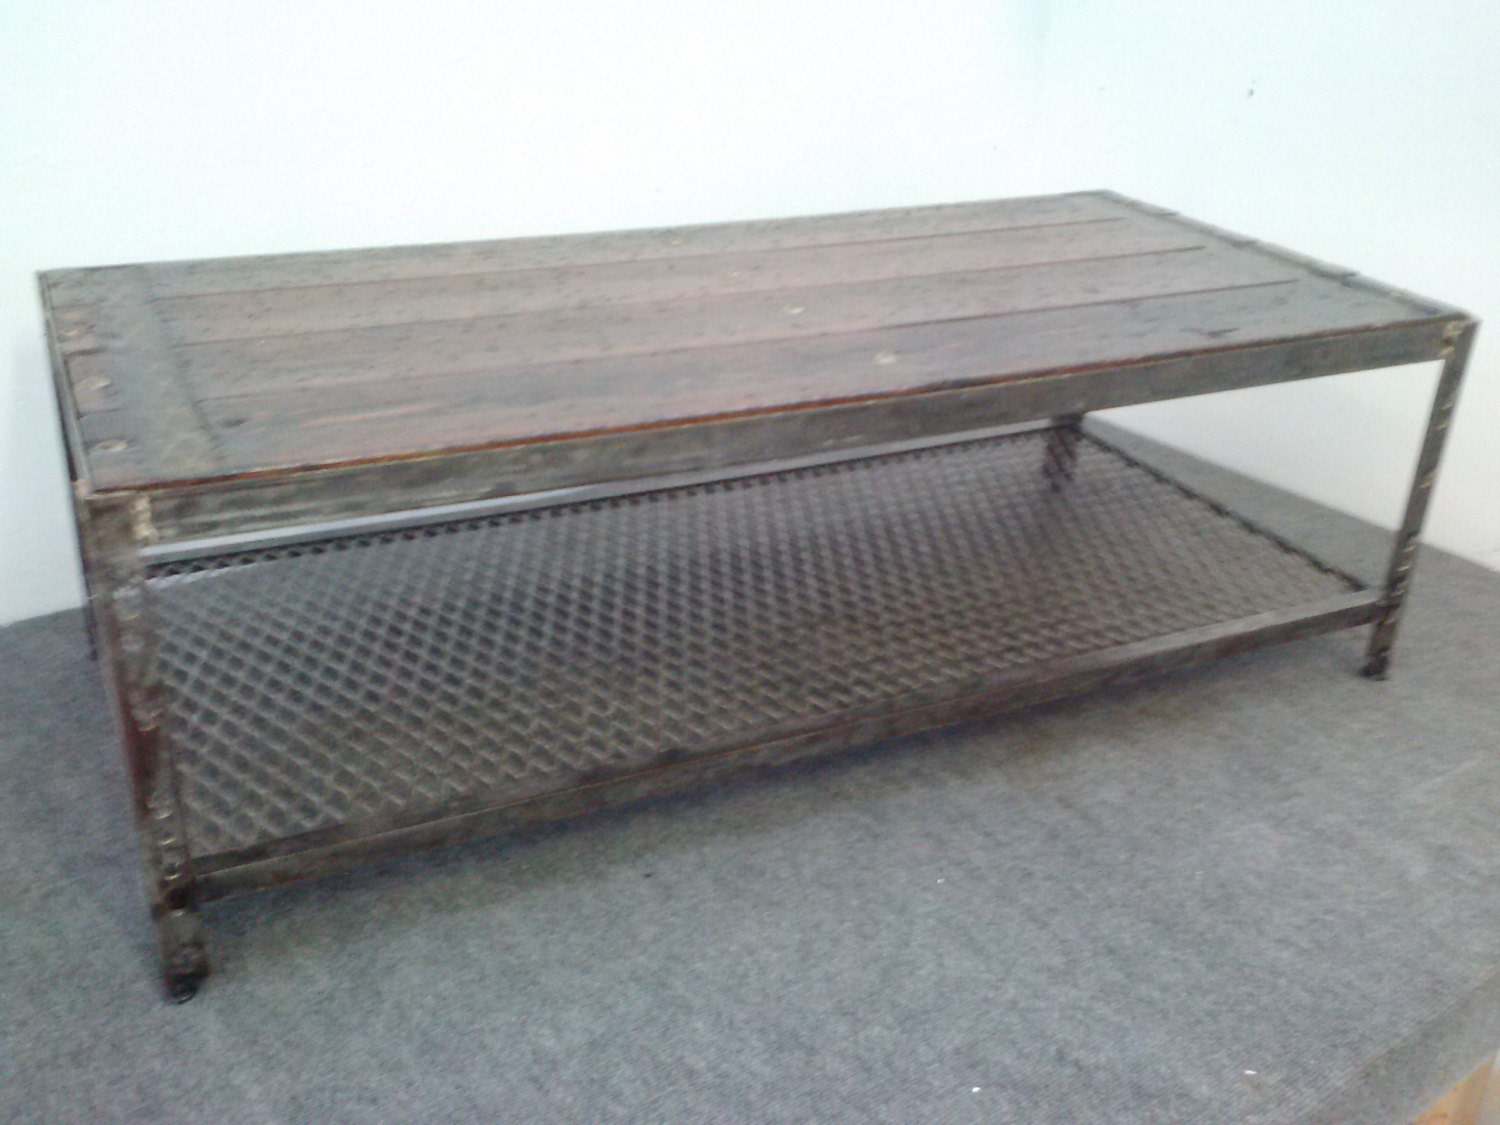 Industrial metal coffee table item036 Industrial metal coffee table